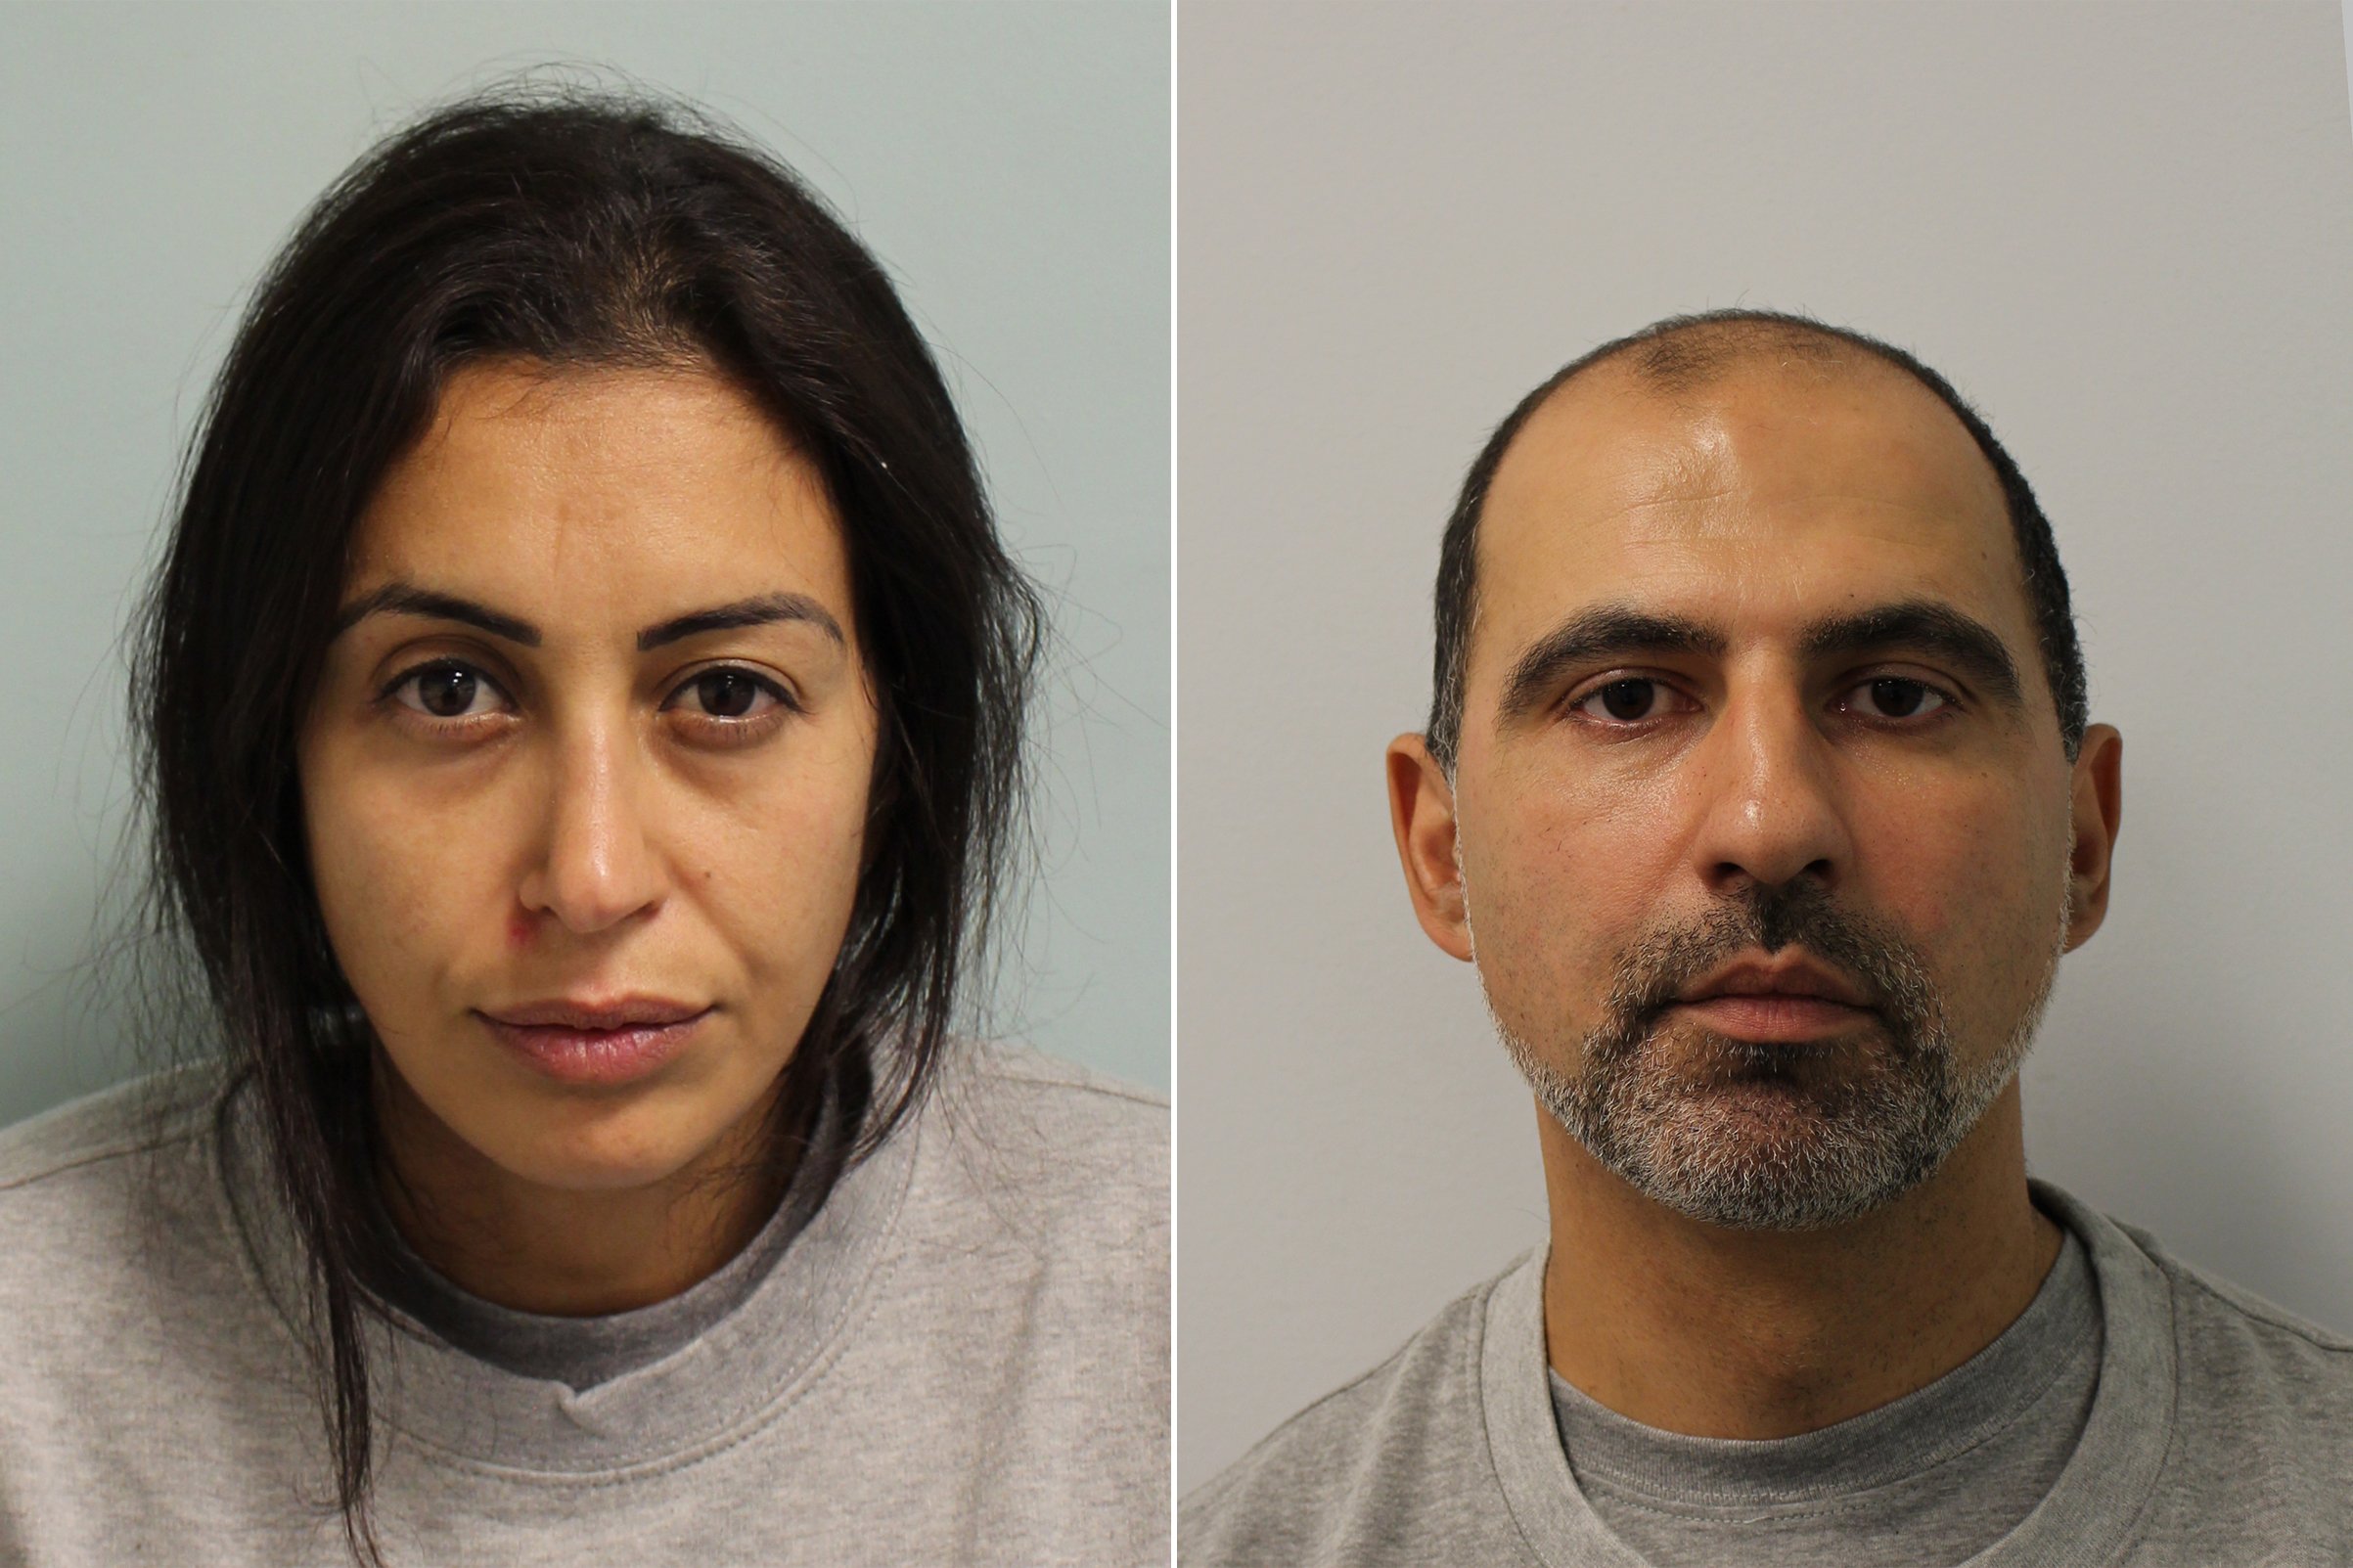 Sabrina Kouider and Ouissem Medouni were found guilty of murdering Sophie Lionnet, on May 24 at London's Old Bailey court